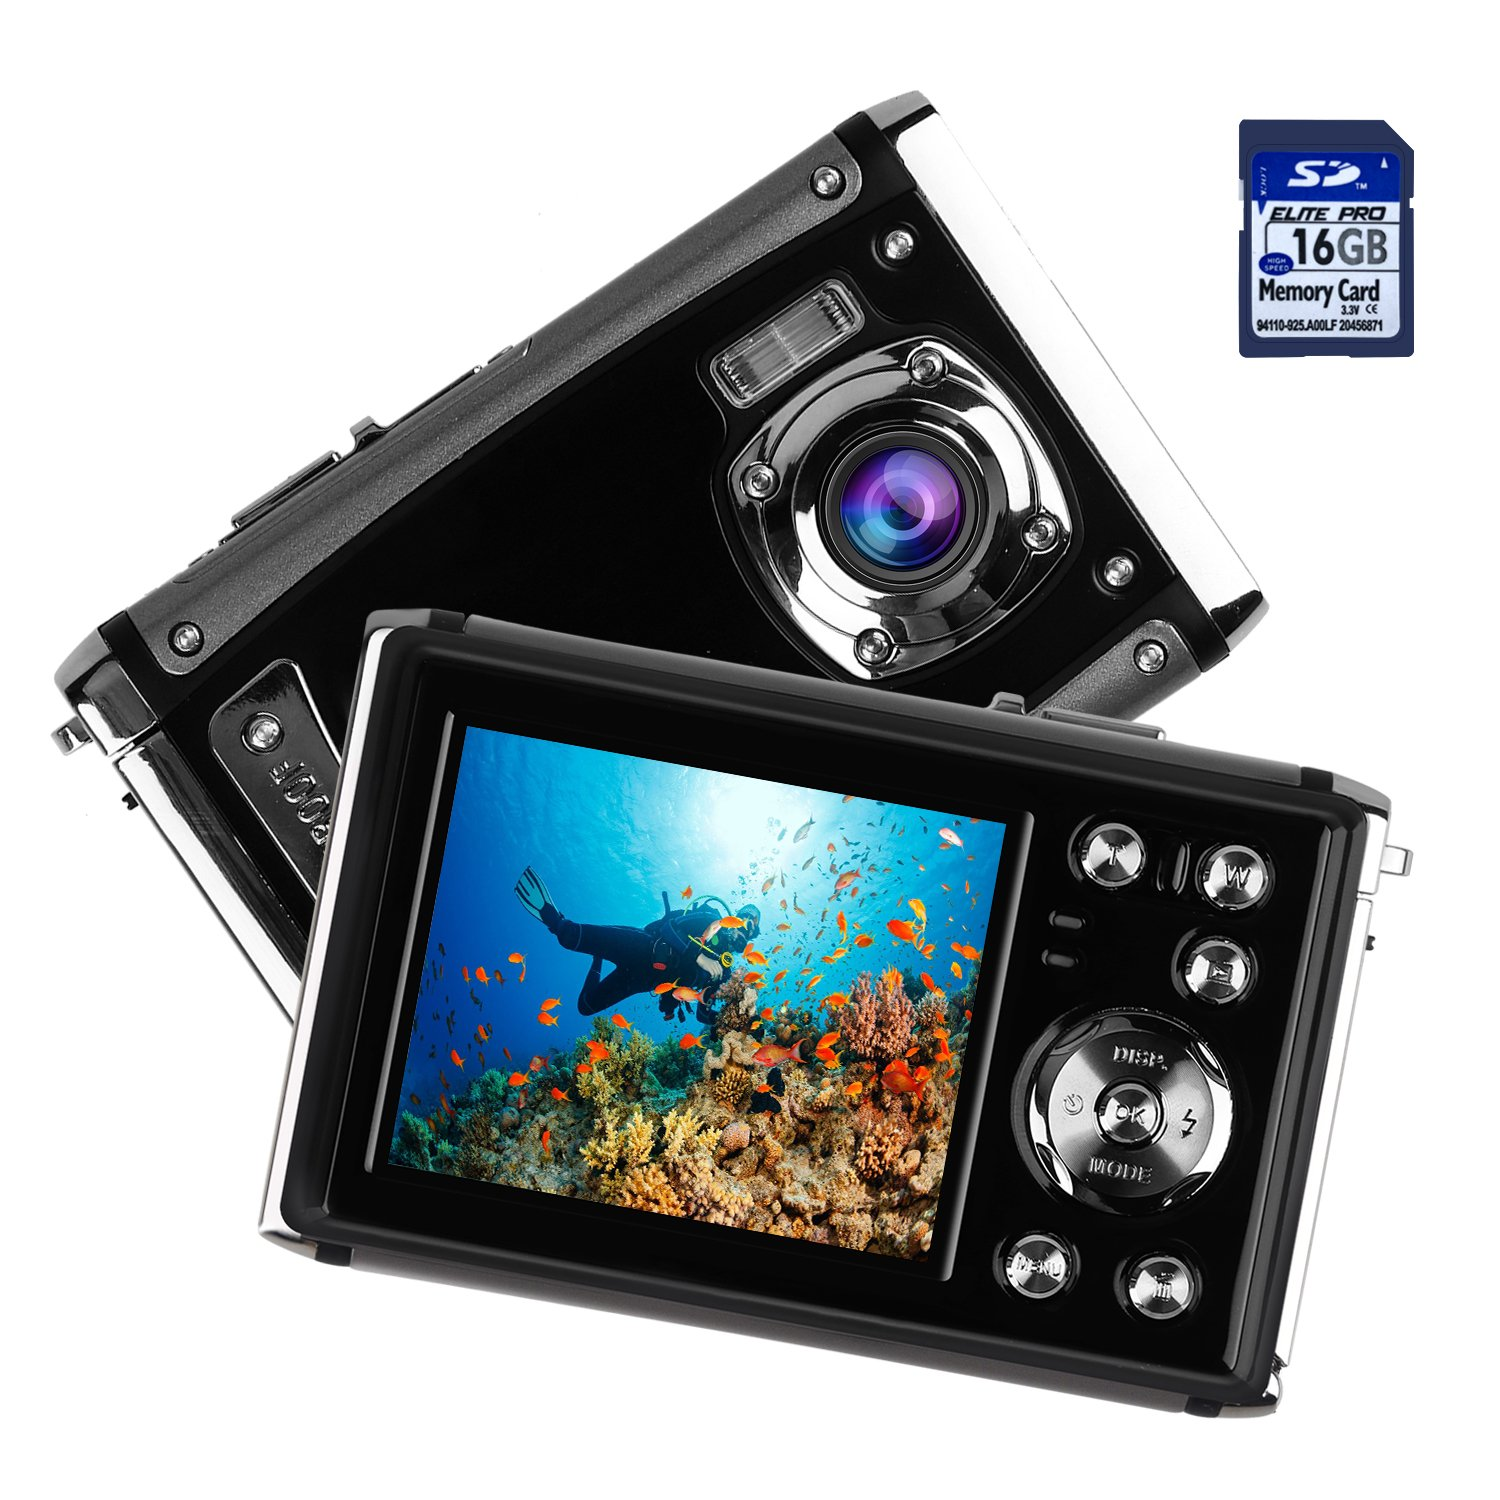 Kids Waterproof Camera, Digital Underwater Camera for Children, 16MP 1080P HD Action Camera with 3M Waterproof, 2.4'' LCD Screen, 8x Digital Zoom, Flash, and Rechargeable Battery(16G SD Card Included)